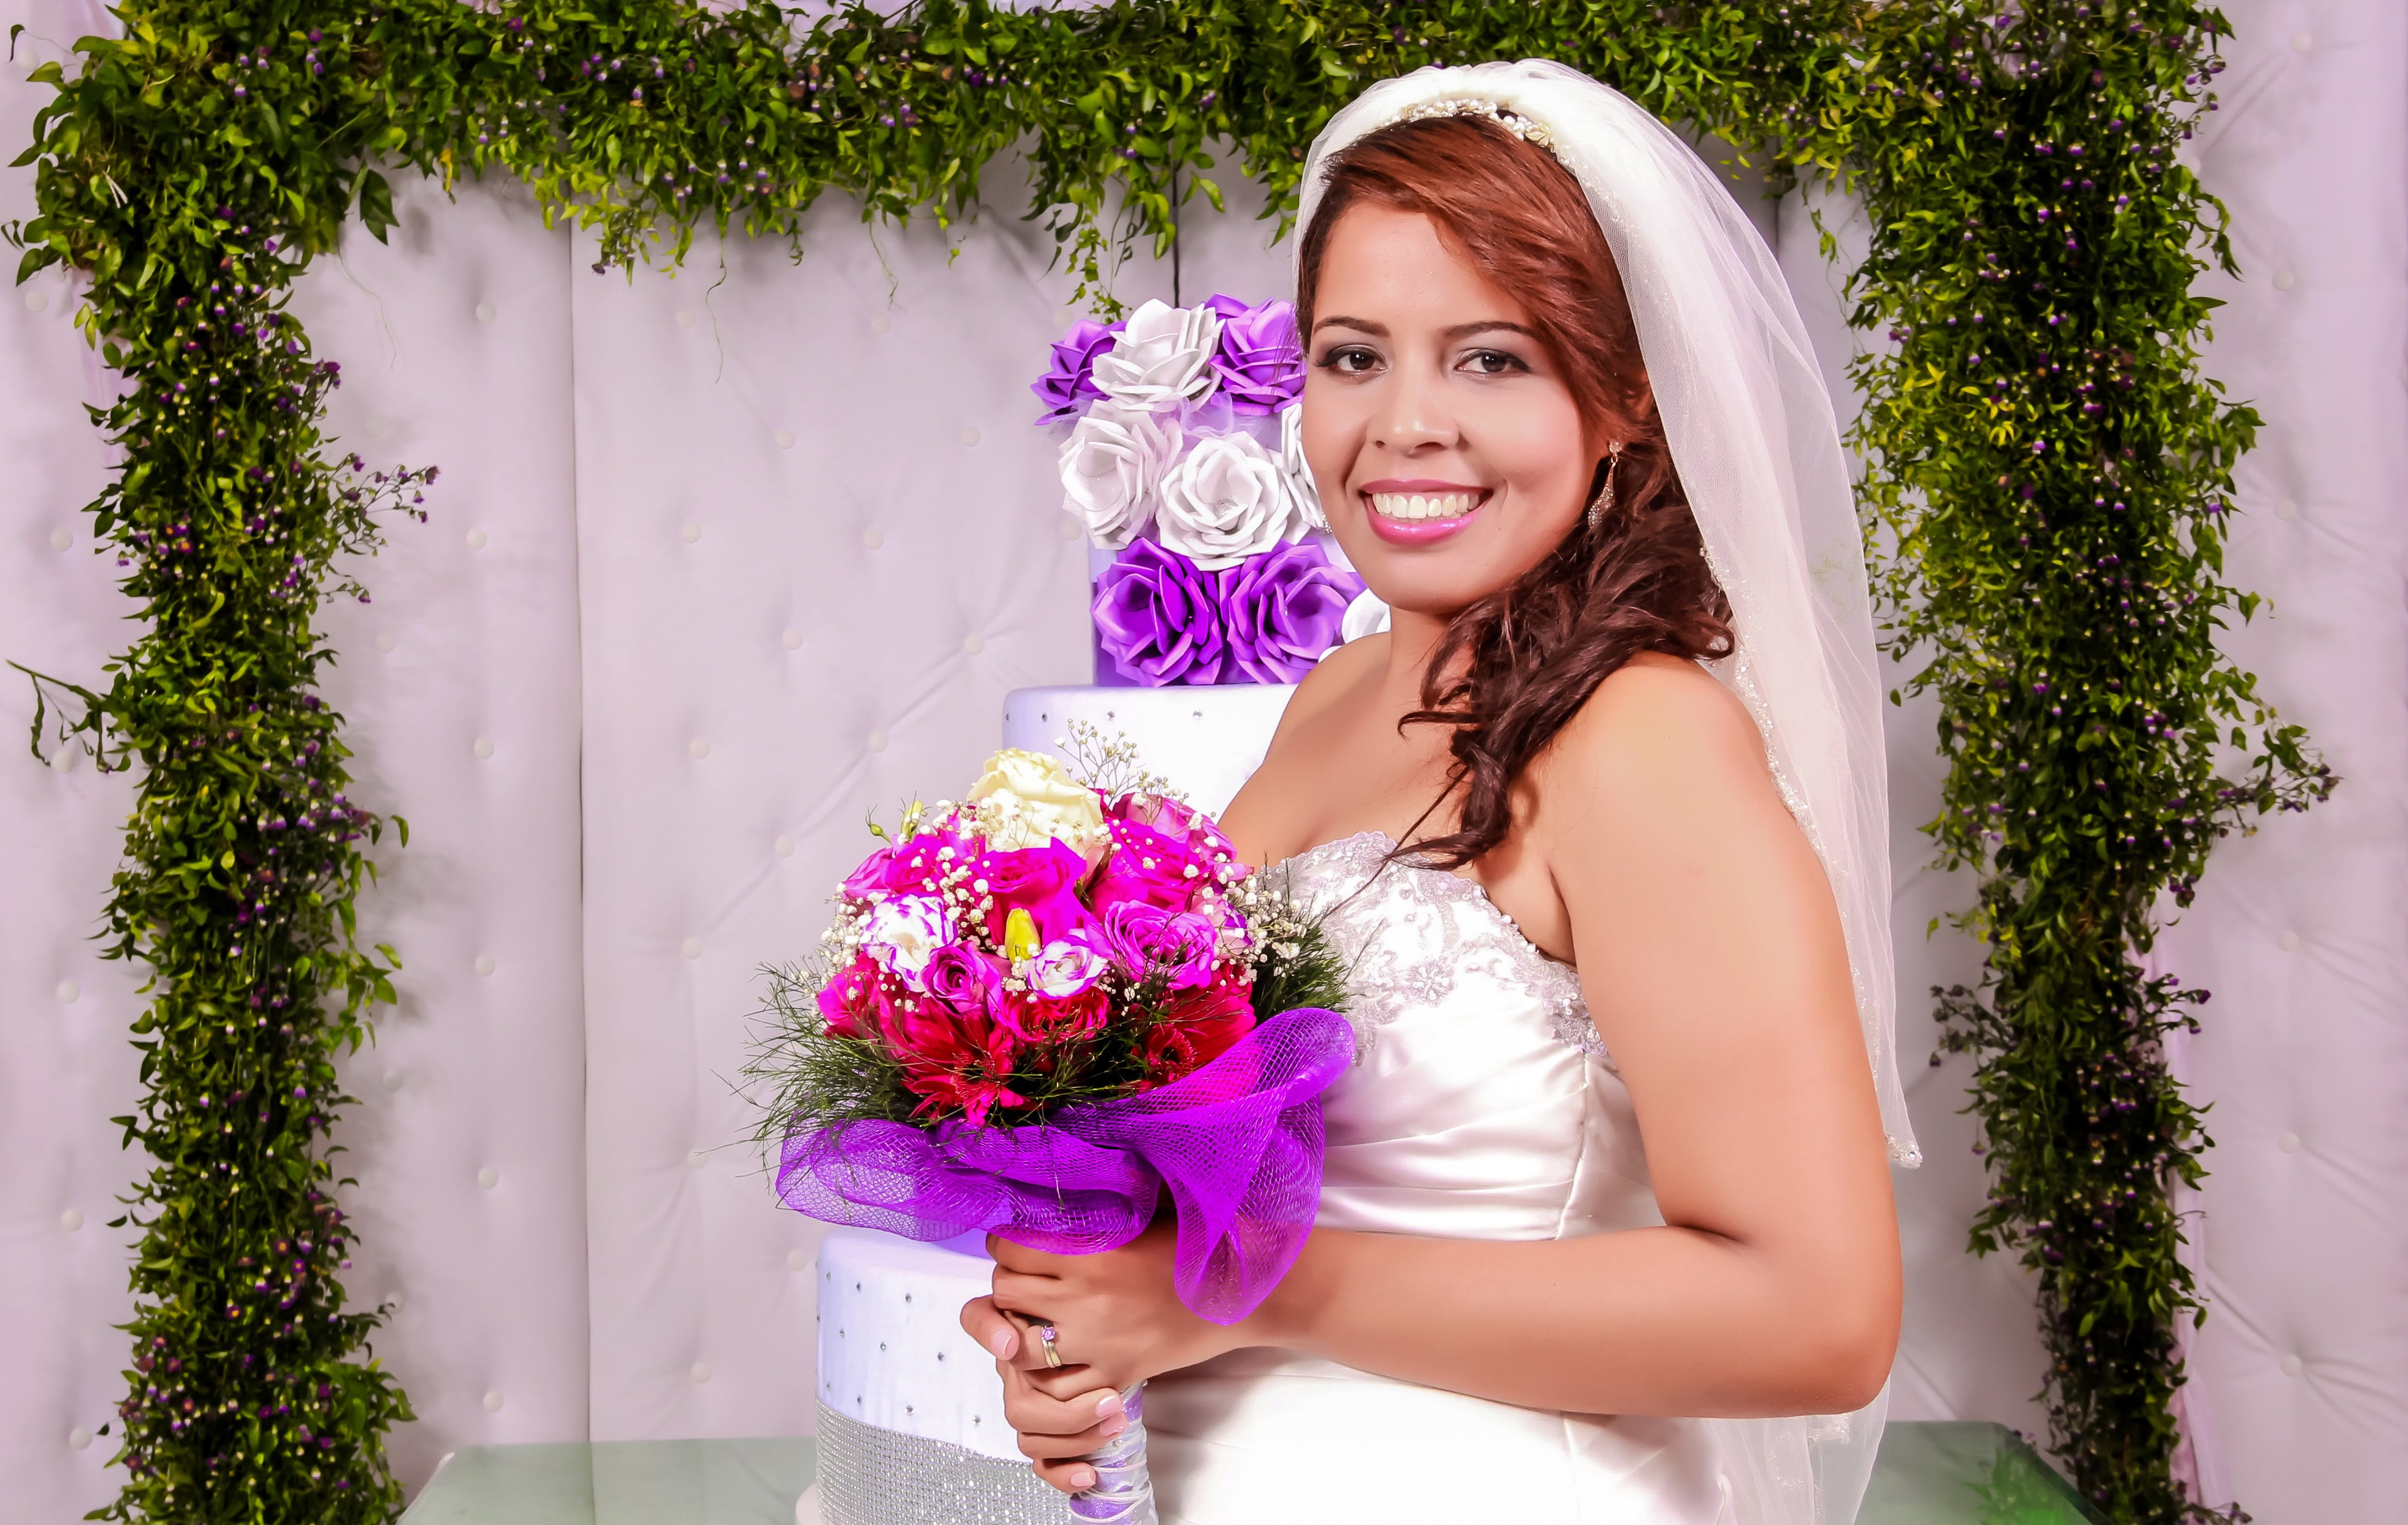 Woman Holding Flower Bouquet in Wedding